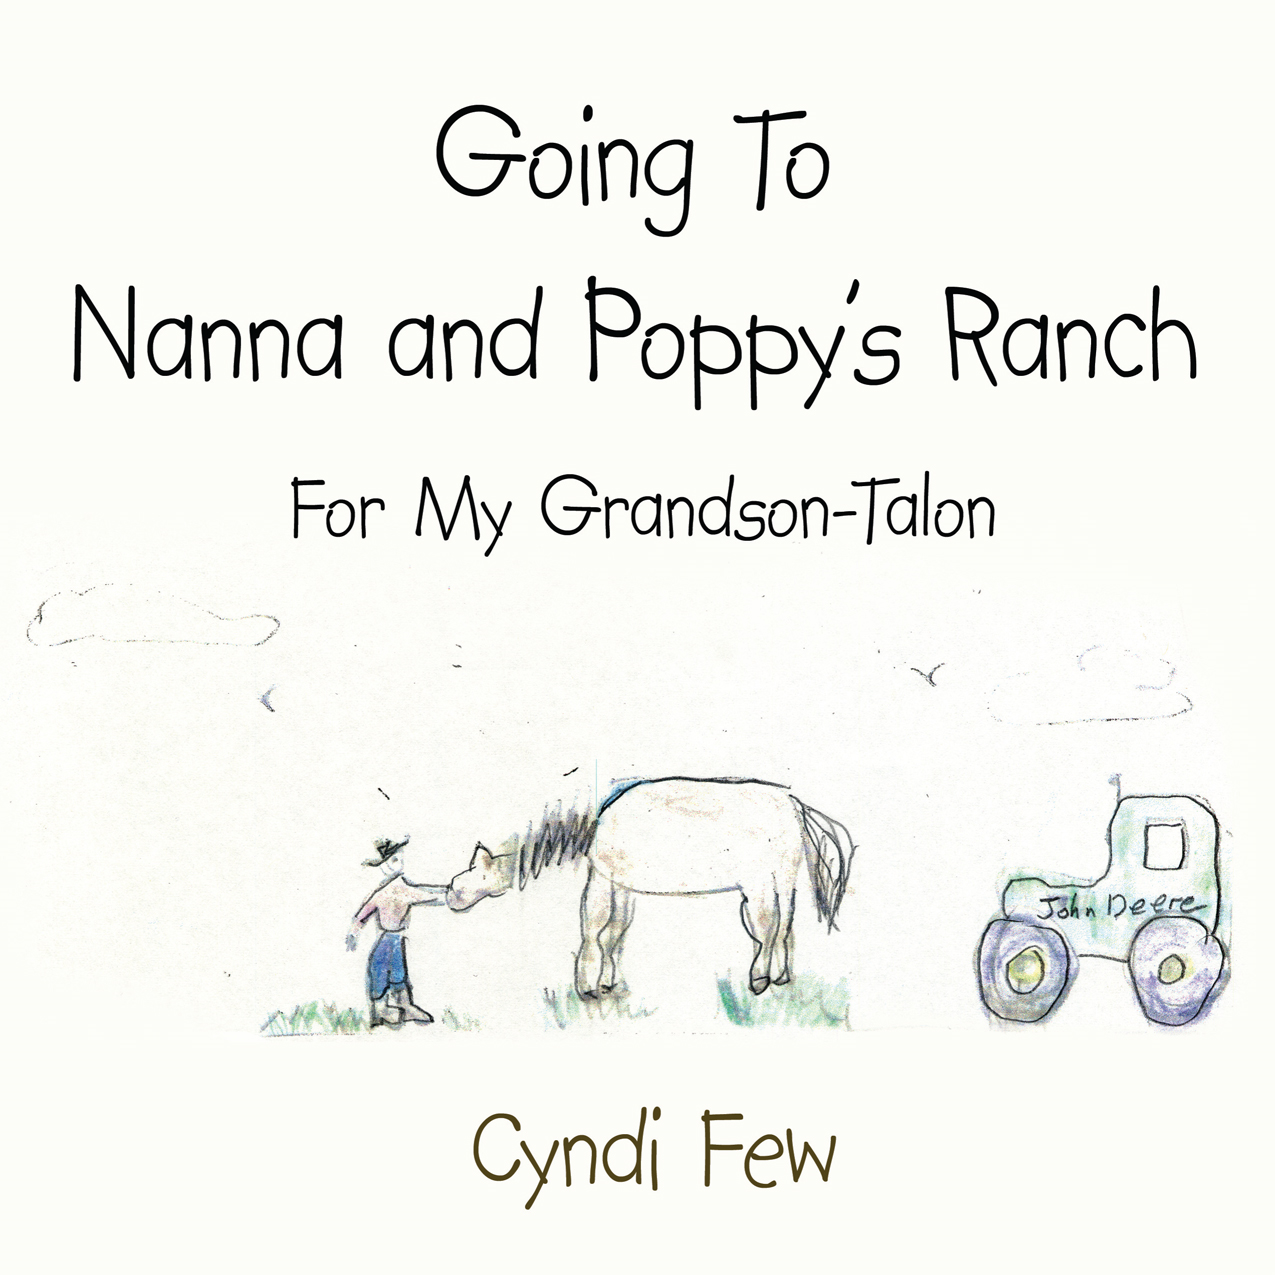 """Going To Nanna and Poppy's Ranch"""